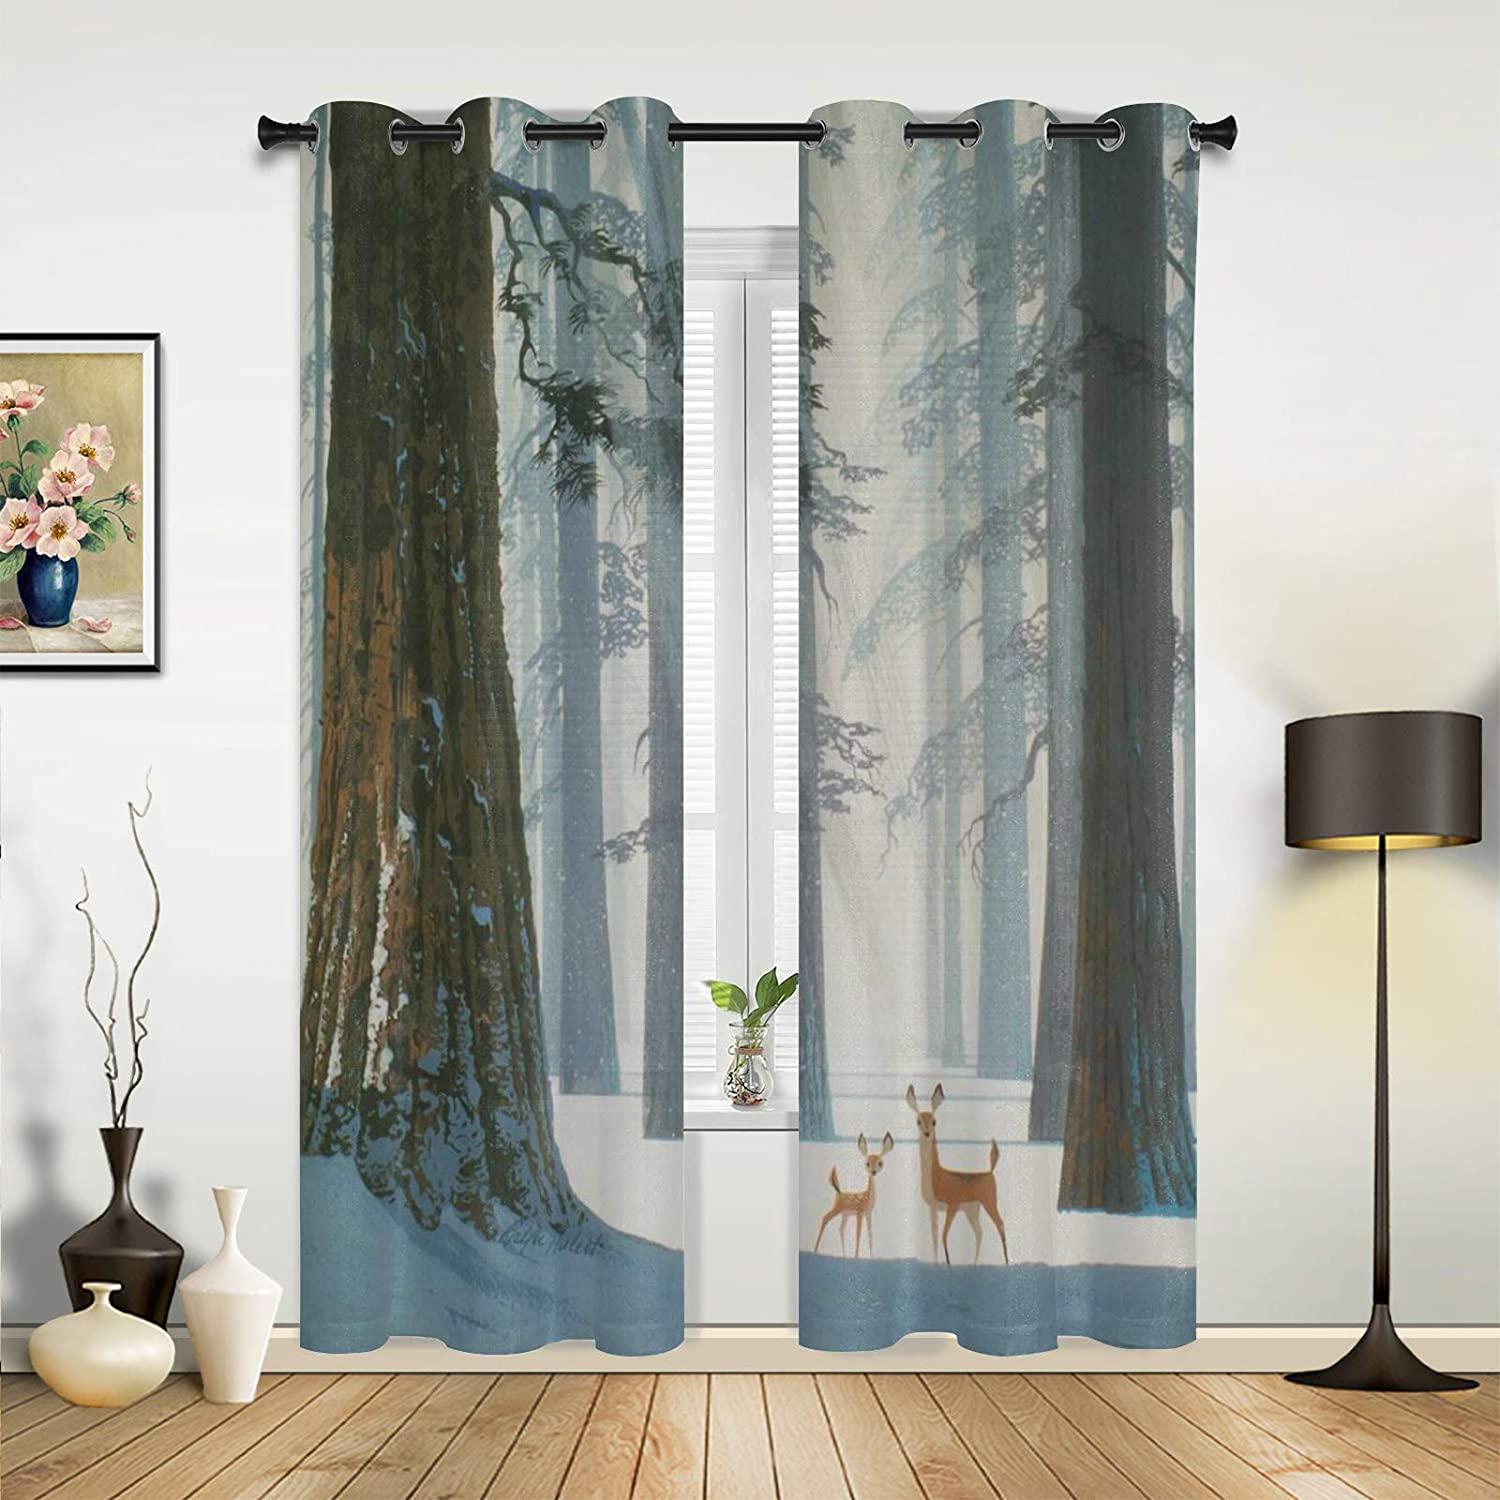 Window Curtains Popular brand in the world Drapes Panels Winter Forest White Snow Cu Bright Clearance SALE! Limited time!